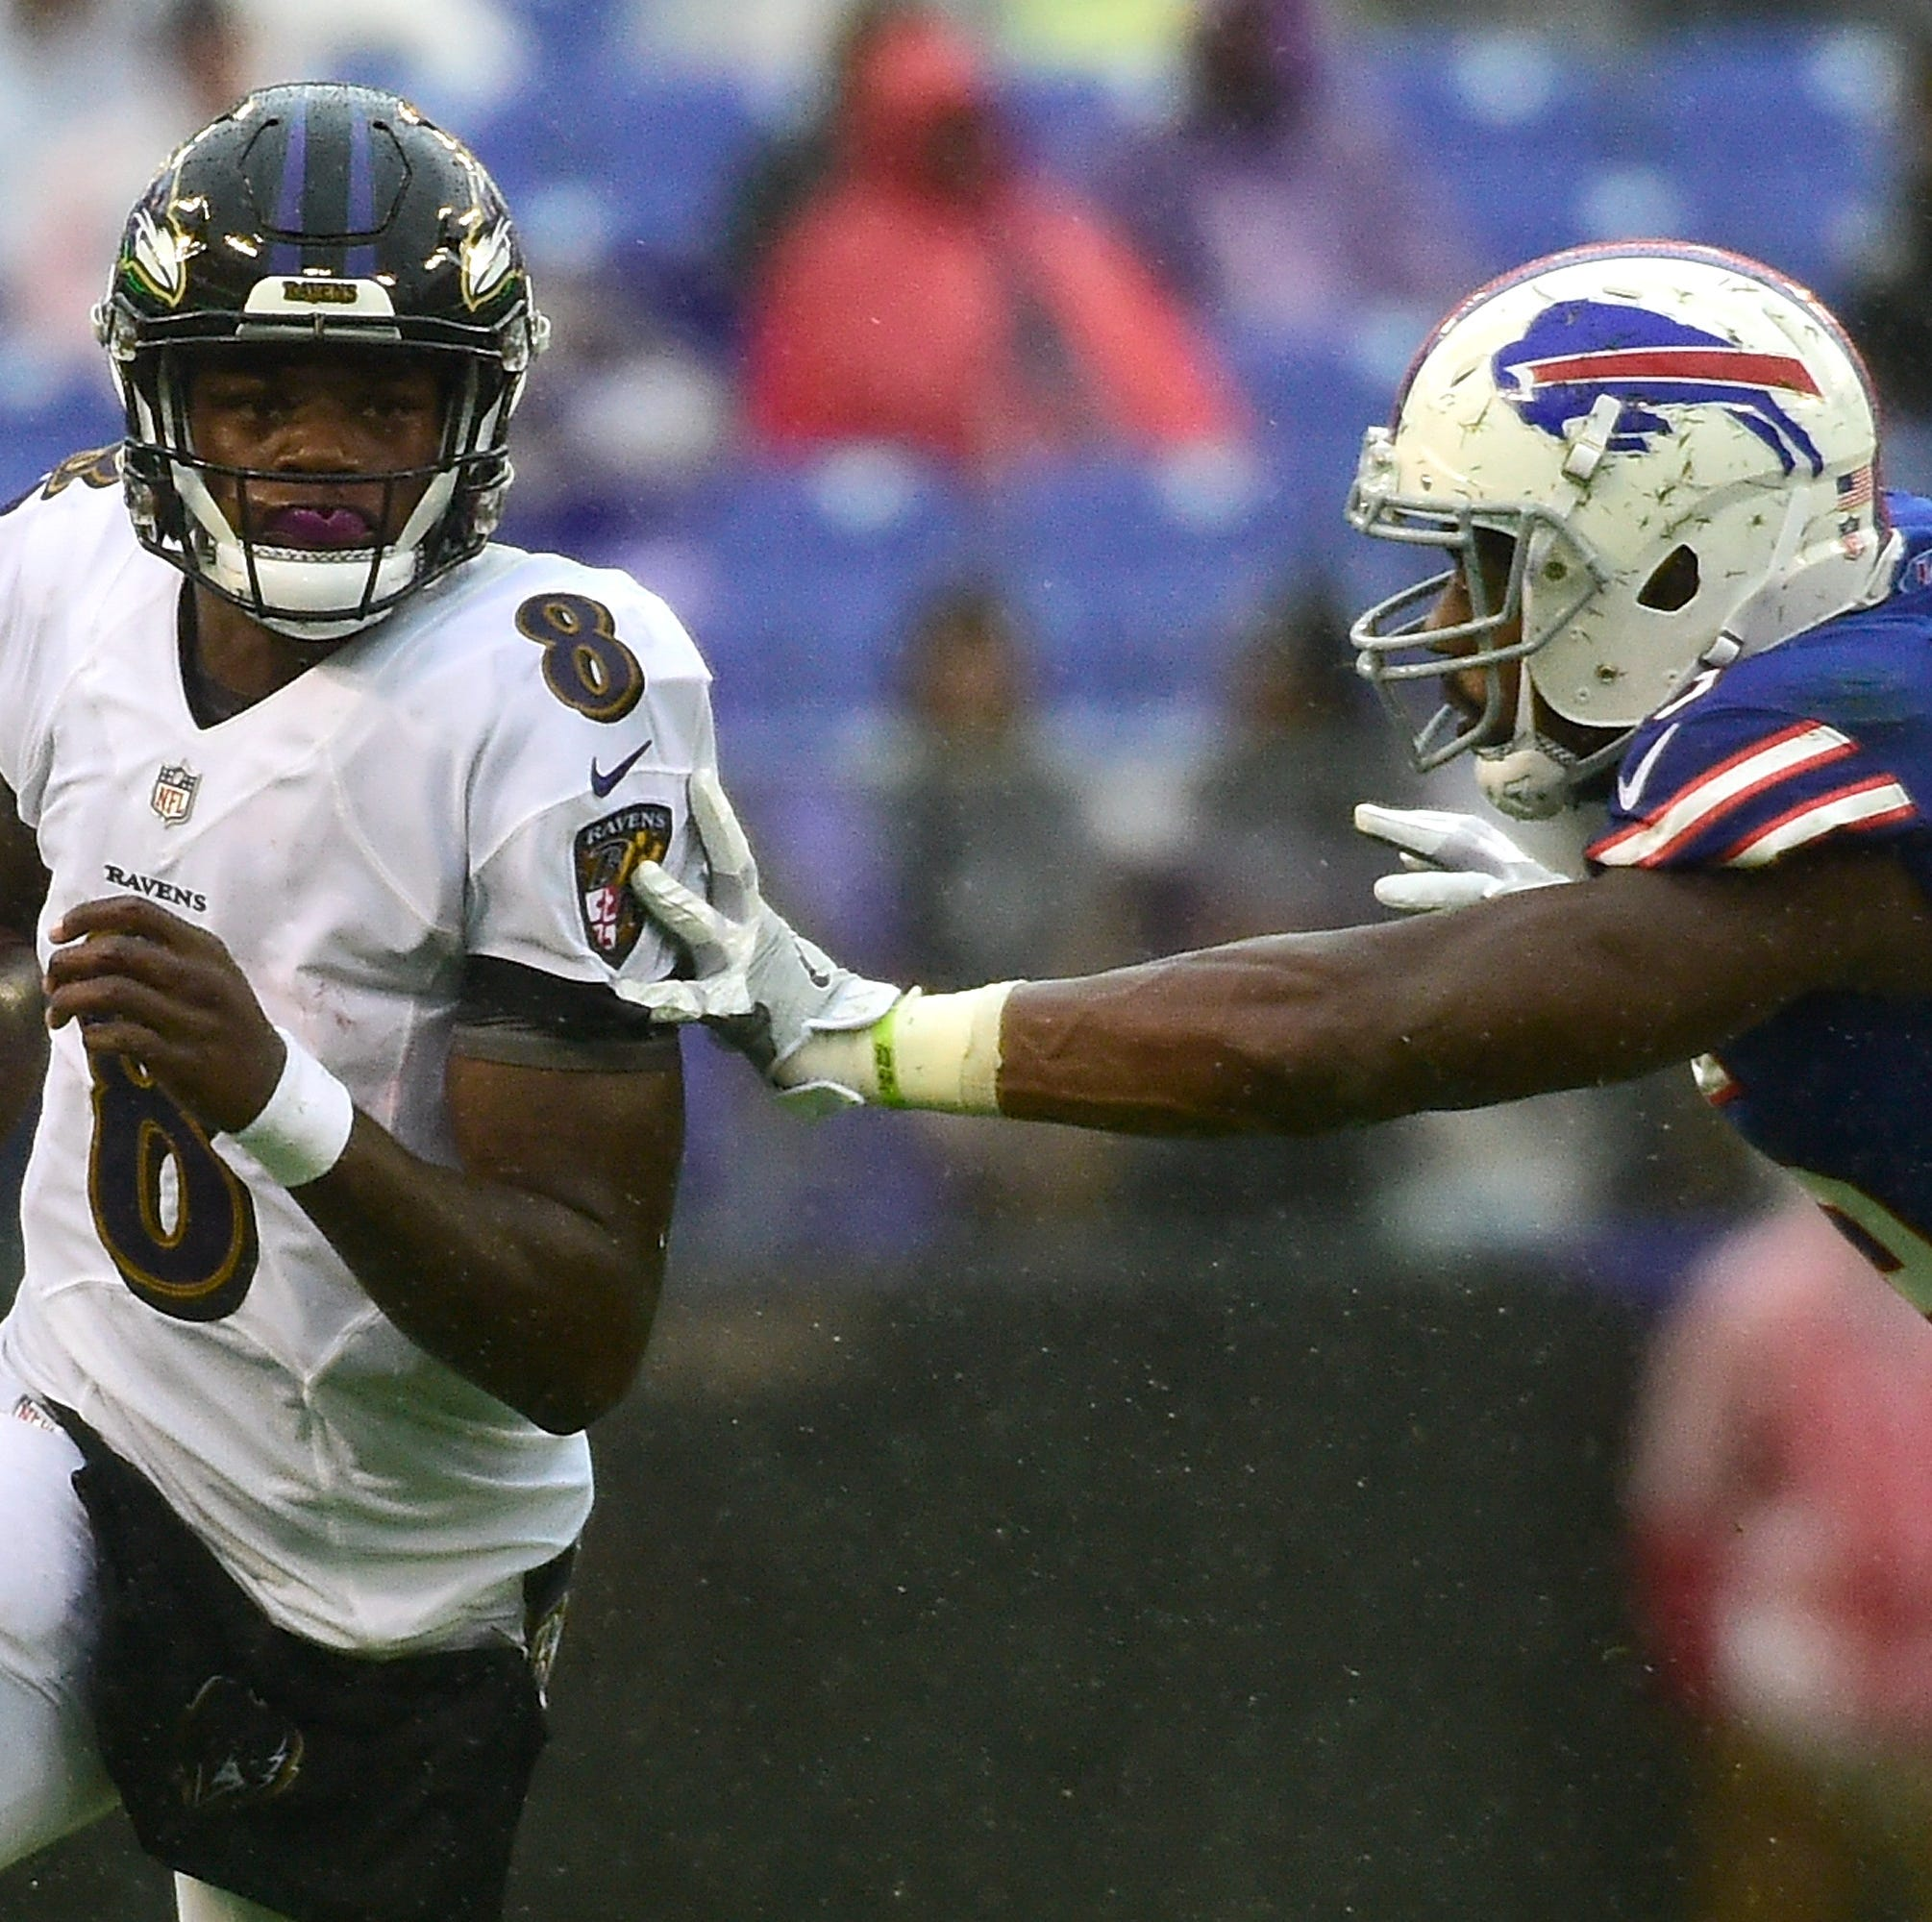 Lost in all the QB hoopla, the mistake-ridden Bills defense has to make quantum leaps